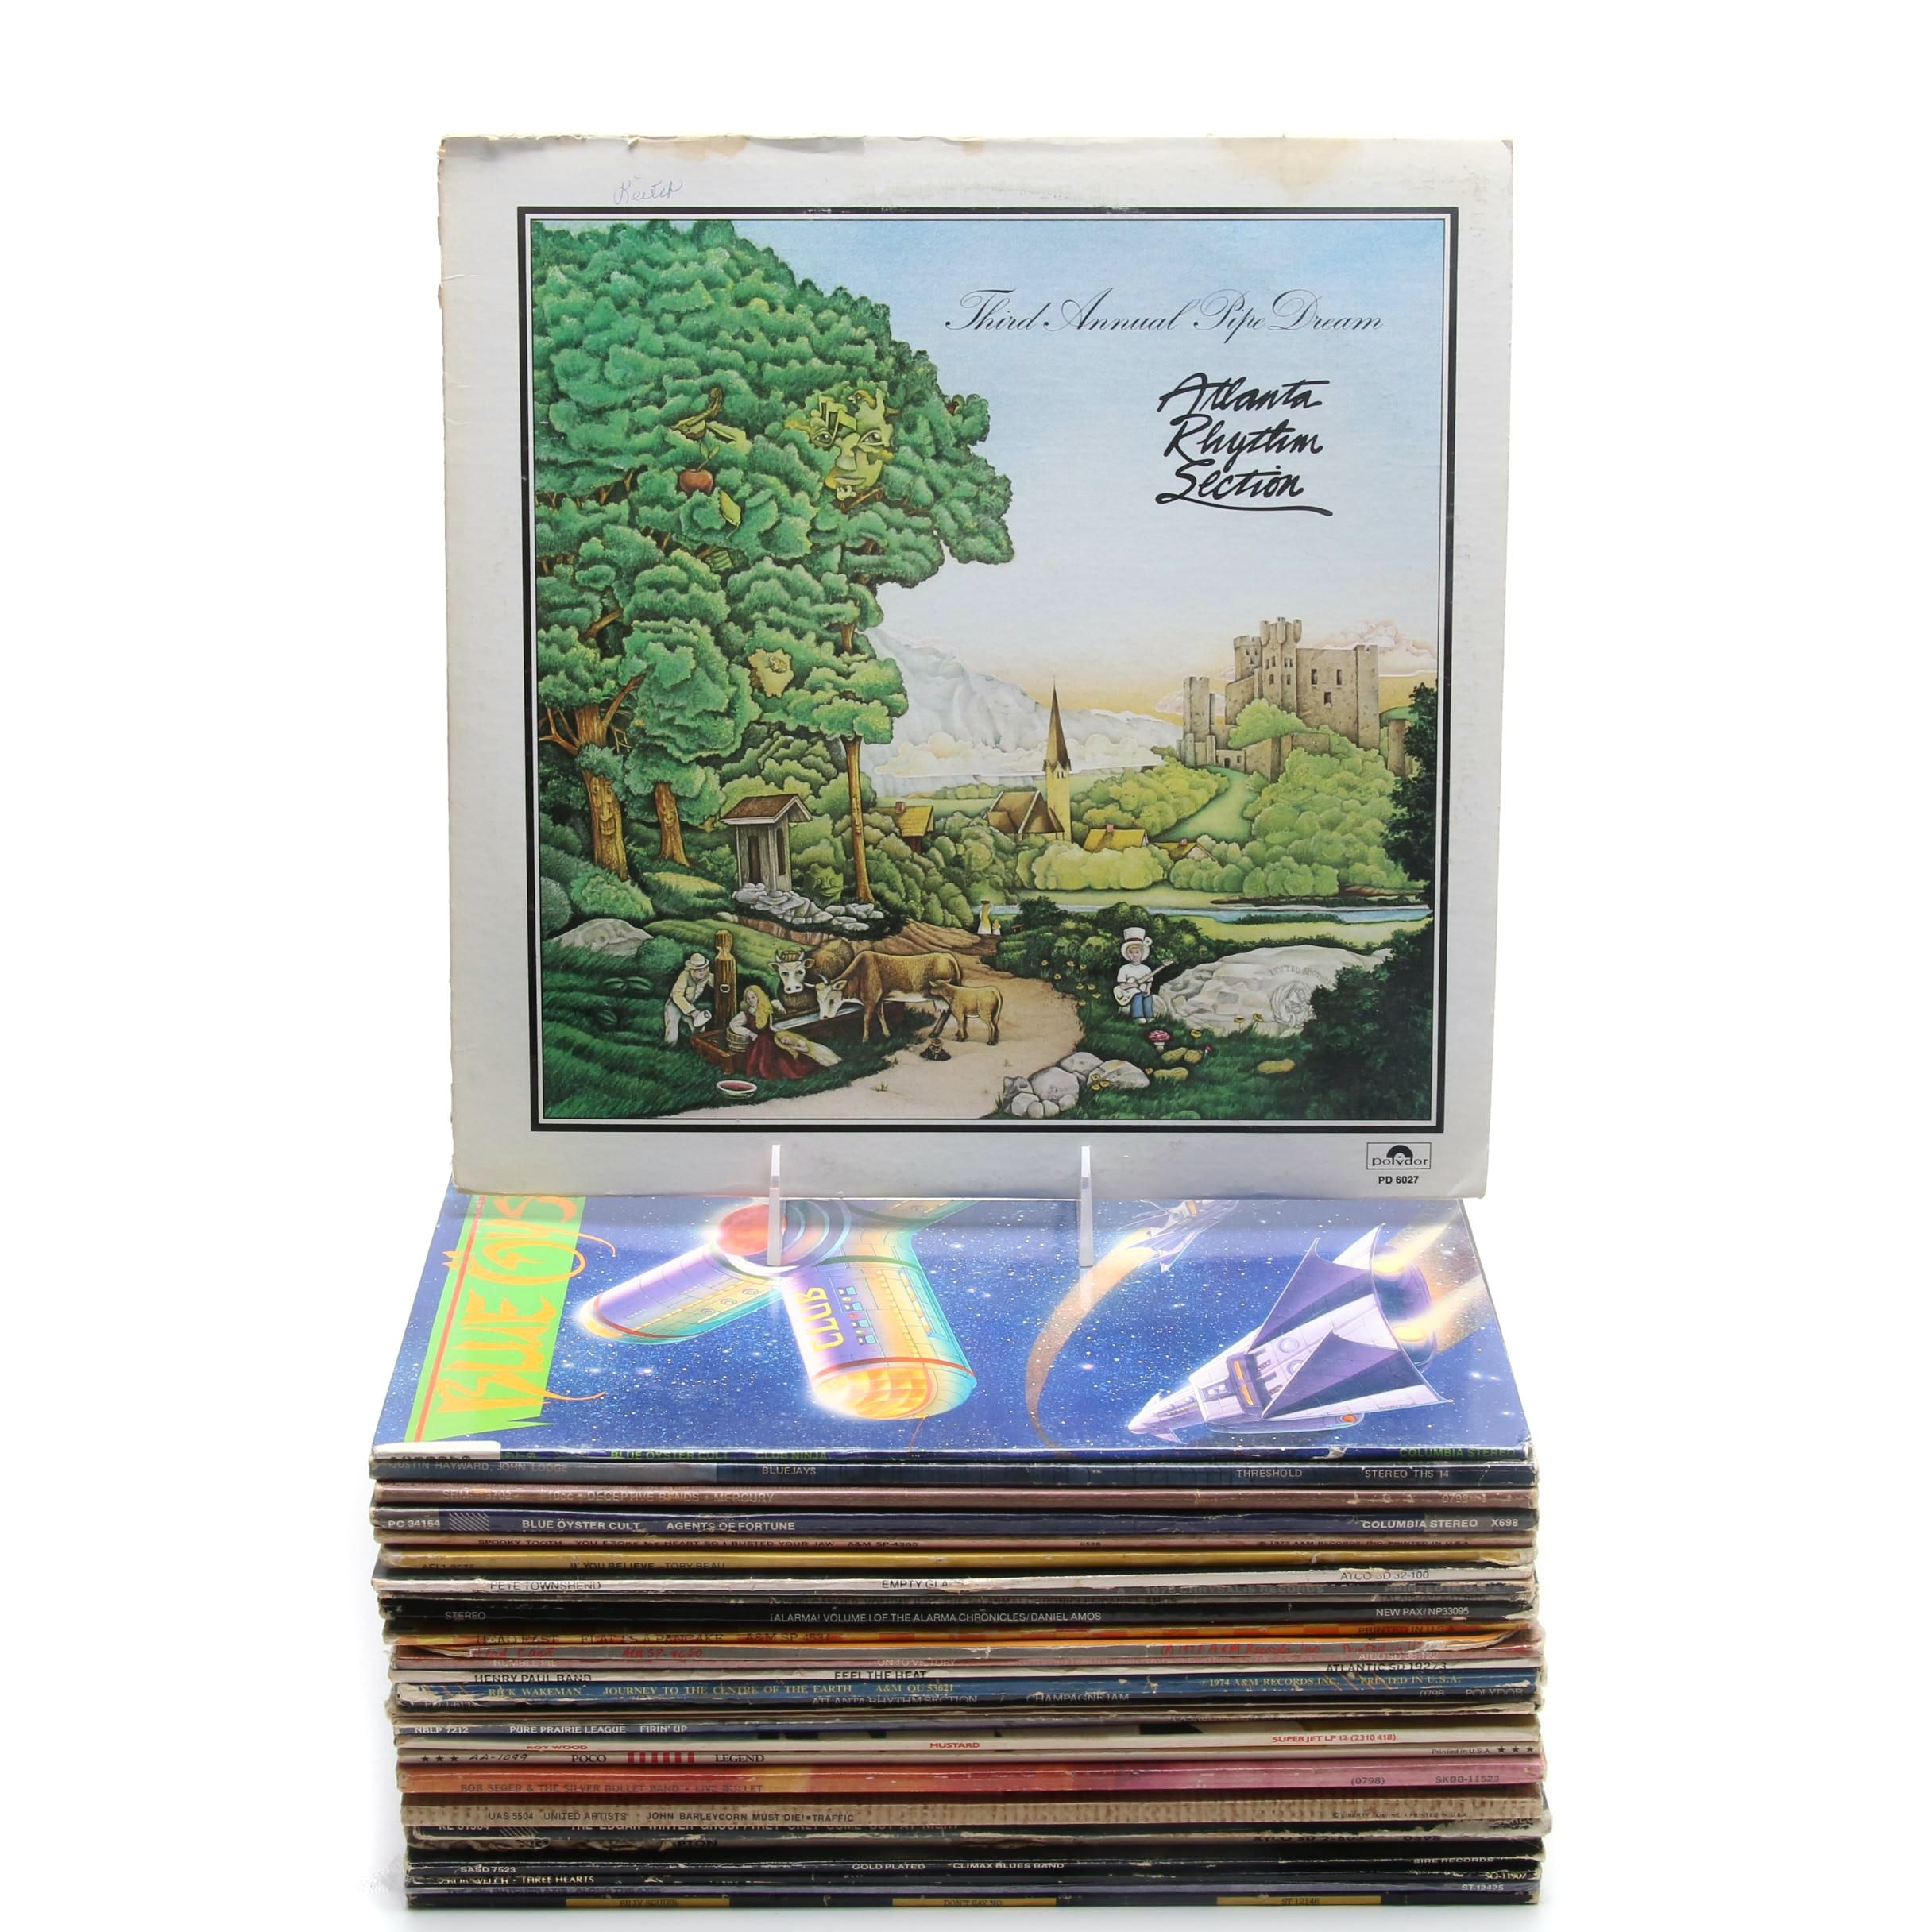 Collection of Rock Records Including Dave Mason and Blue Oyster Cult